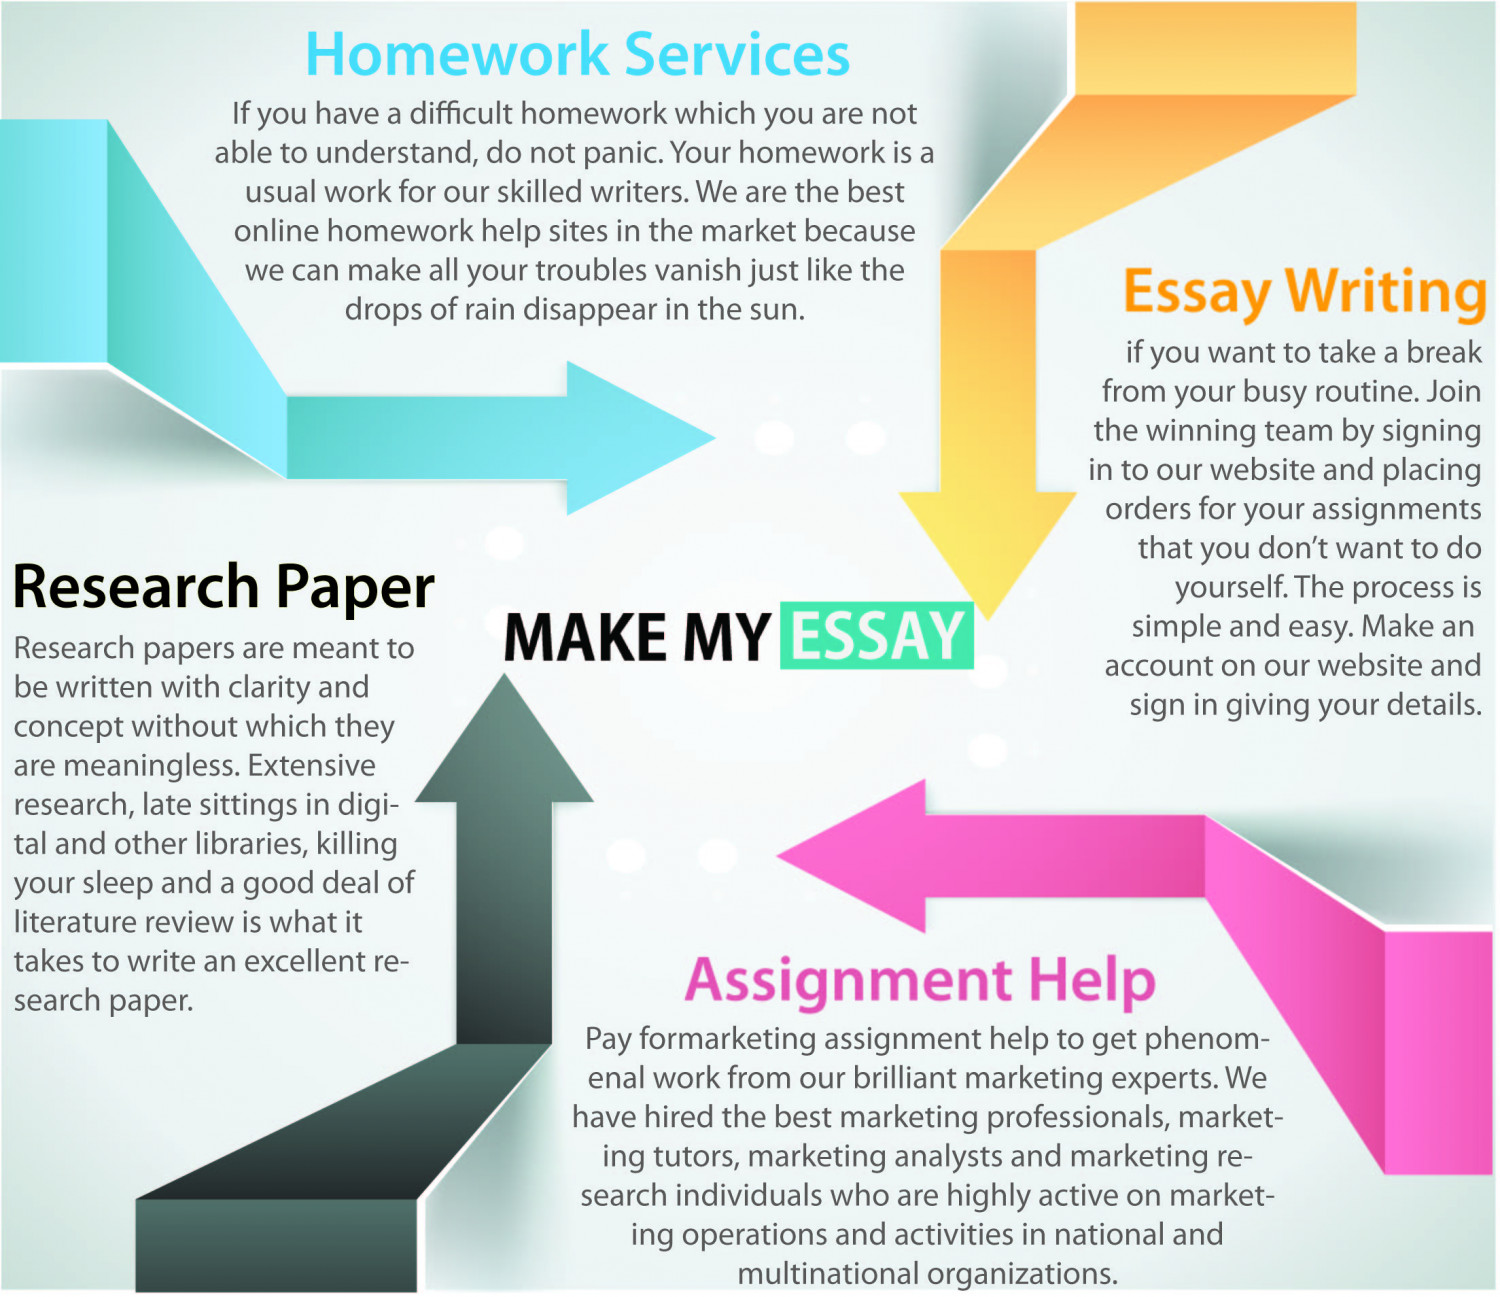 what o custom essay writing service Essay shmessay place an order at edubirdie for free and choose a professional writer do the rest simple as that  the professional essay writing service for students who can't even  check out our custom essay writing service features we guarantee that your custom essay will not only be delivered on time but will also be of the highest.